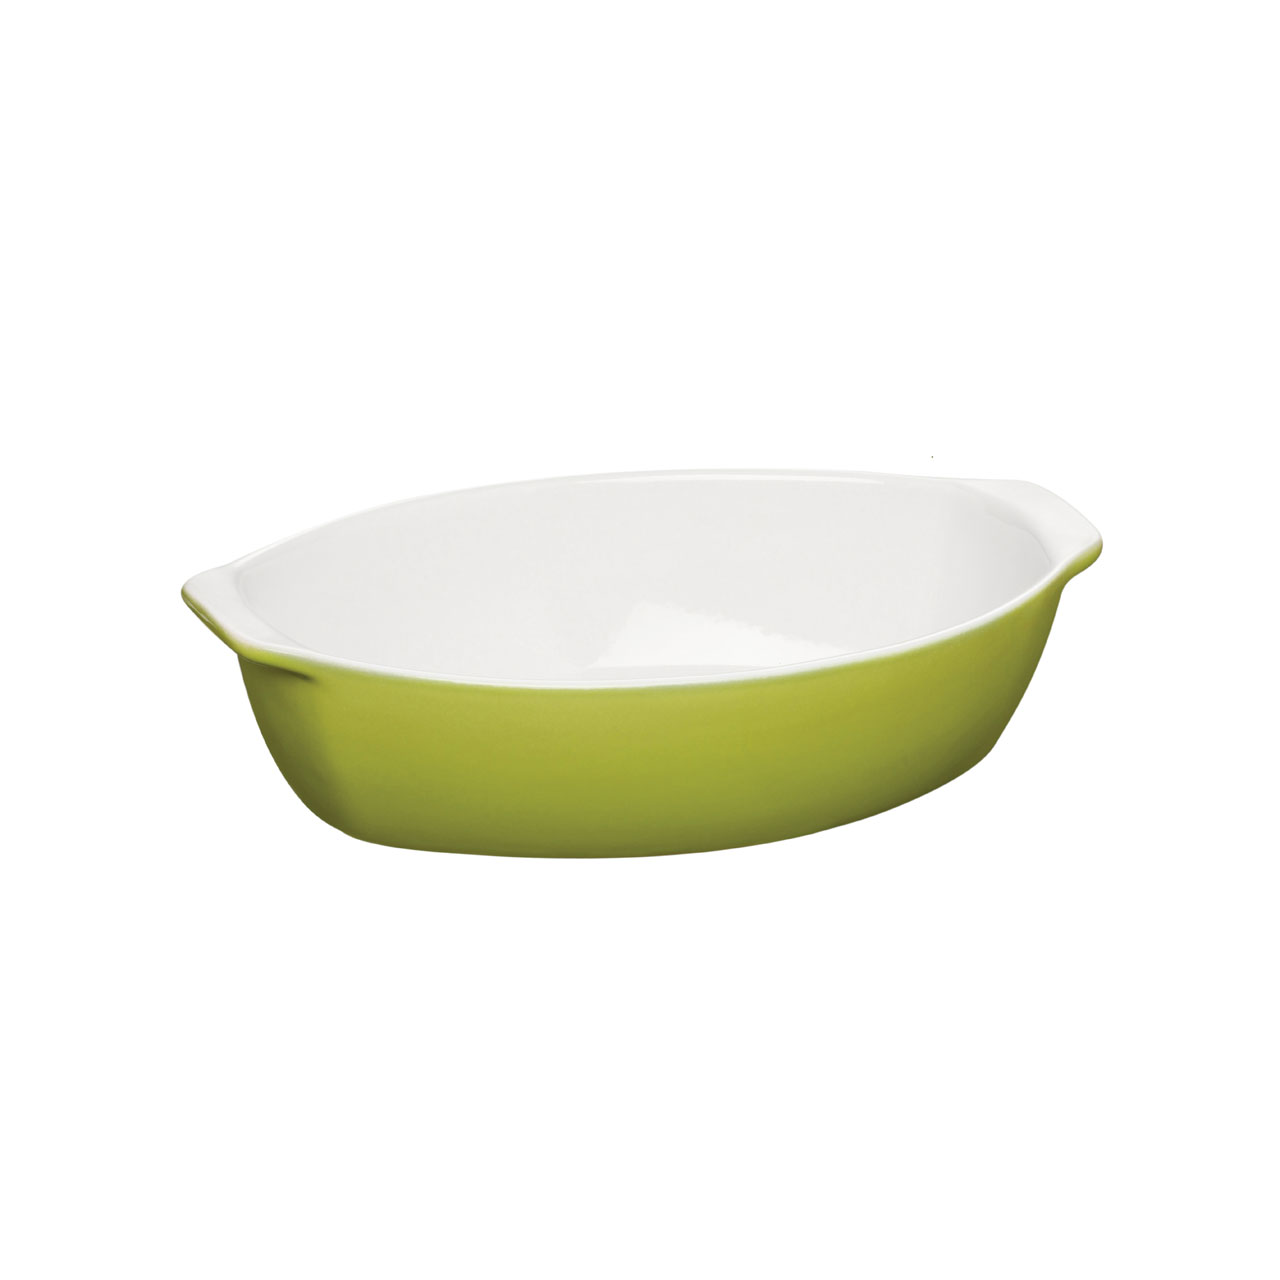 Prime Furnishing OvenLove Baking Dish - Lime Green